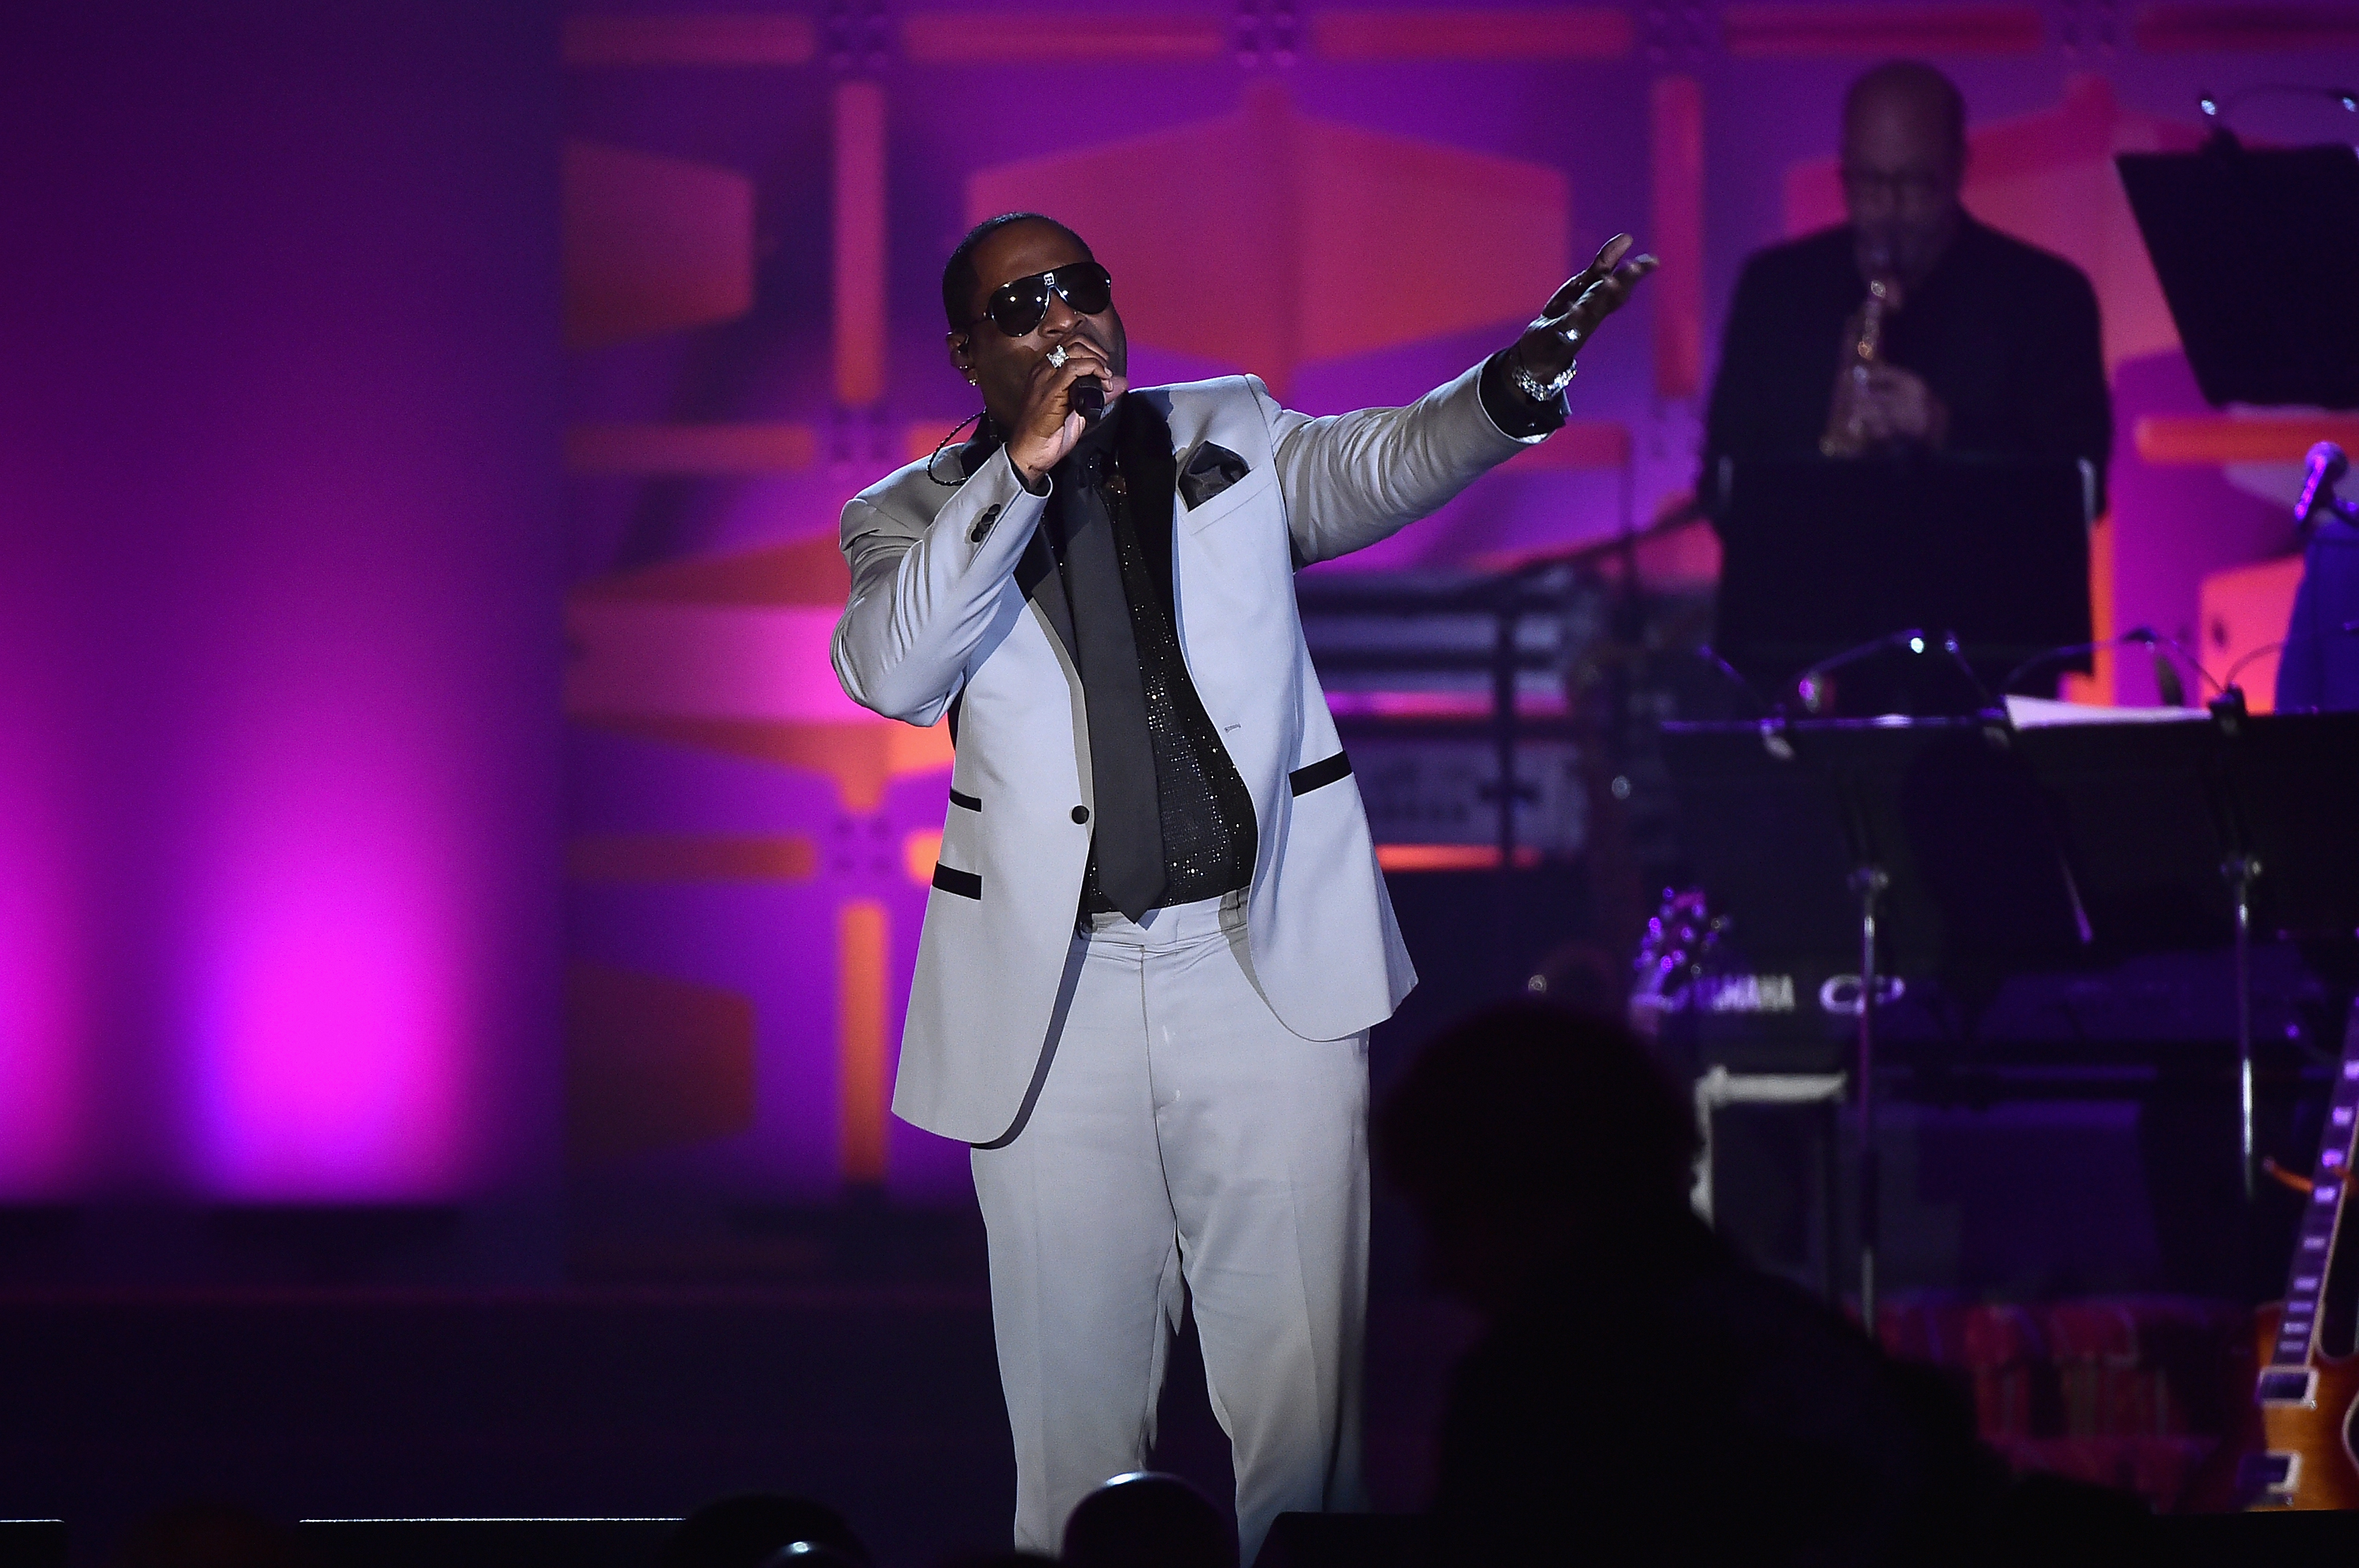 NEW YORK, NY - JUNE 15:  Johnny Gill performs onstage at the Songwriters Hall Of Fame 48th Annual Induction and Awards at New York Marriott Marquis Hotel on June 15, 2017 in New York City.  (Photo by Theo Wargo/Getty Images for Songwriters Hall Of Fame) *** Local Caption *** Johnny Gill